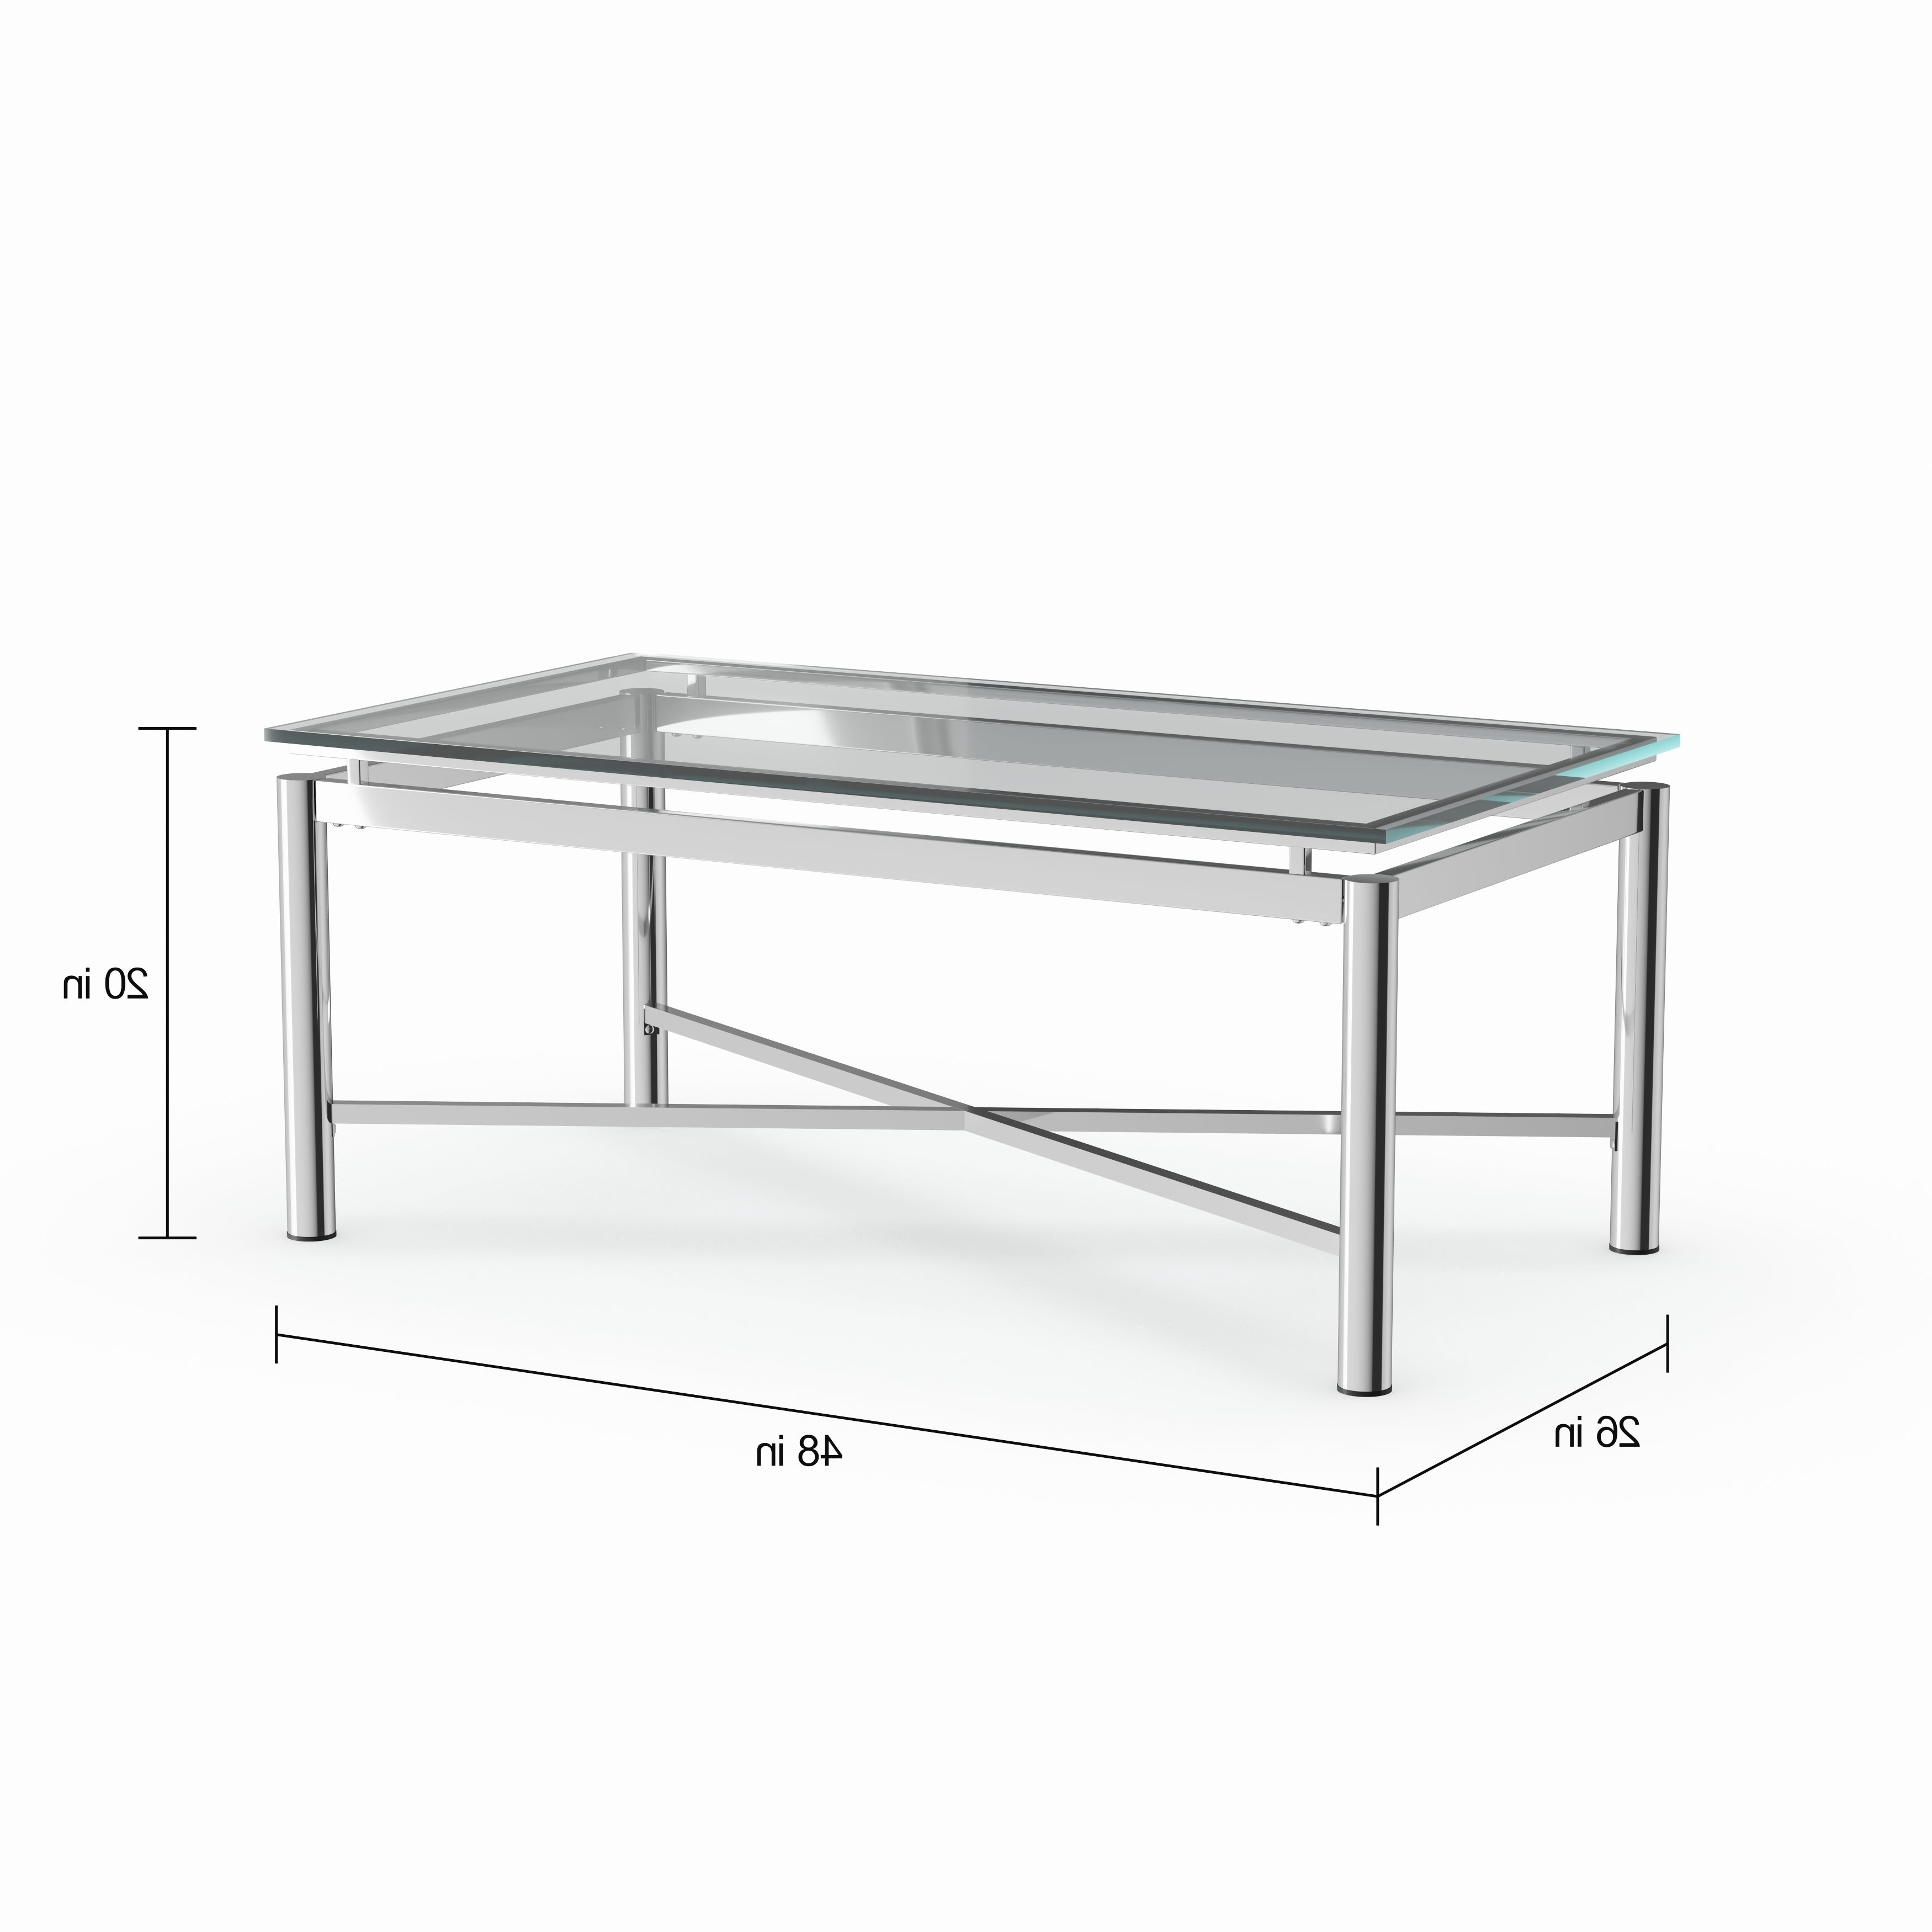 Strick & Bolton Jules Chrome And Glass Coffee Table Throughout Well Known Strick & Bolton Jules Chrome And Glass Coffee Tables (View 2 of 20)